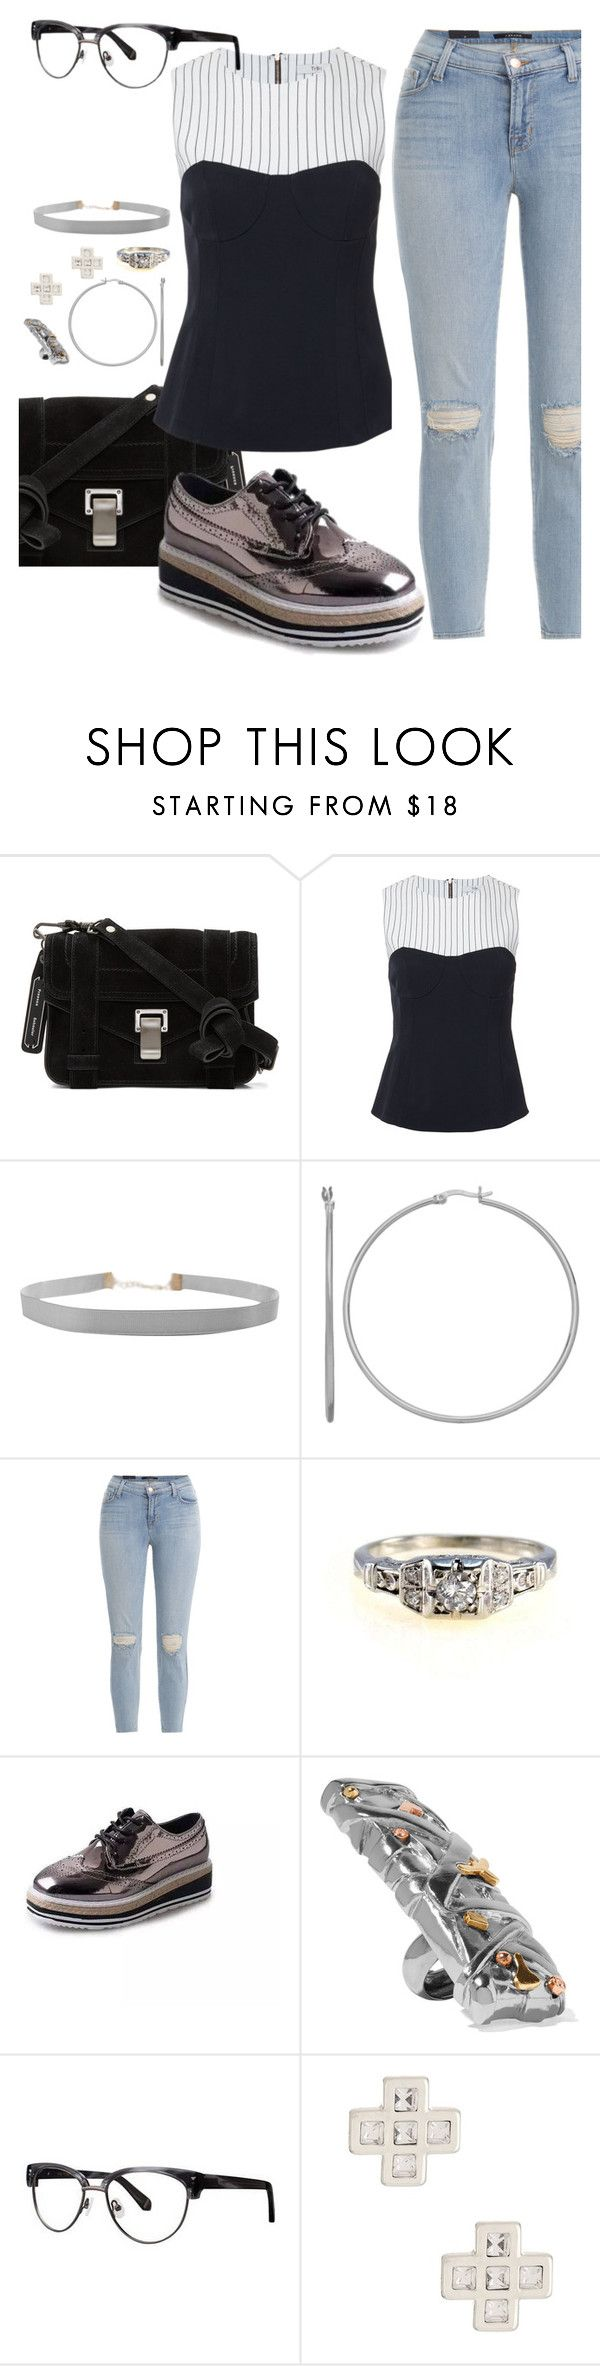 """Reddit"" by chelsofly ❤ liked on Polyvore featuring Proenza Schouler, TIBI, Humble Chic, J Brand, Acne Studios, Zac Posen and Marc Jacobs"